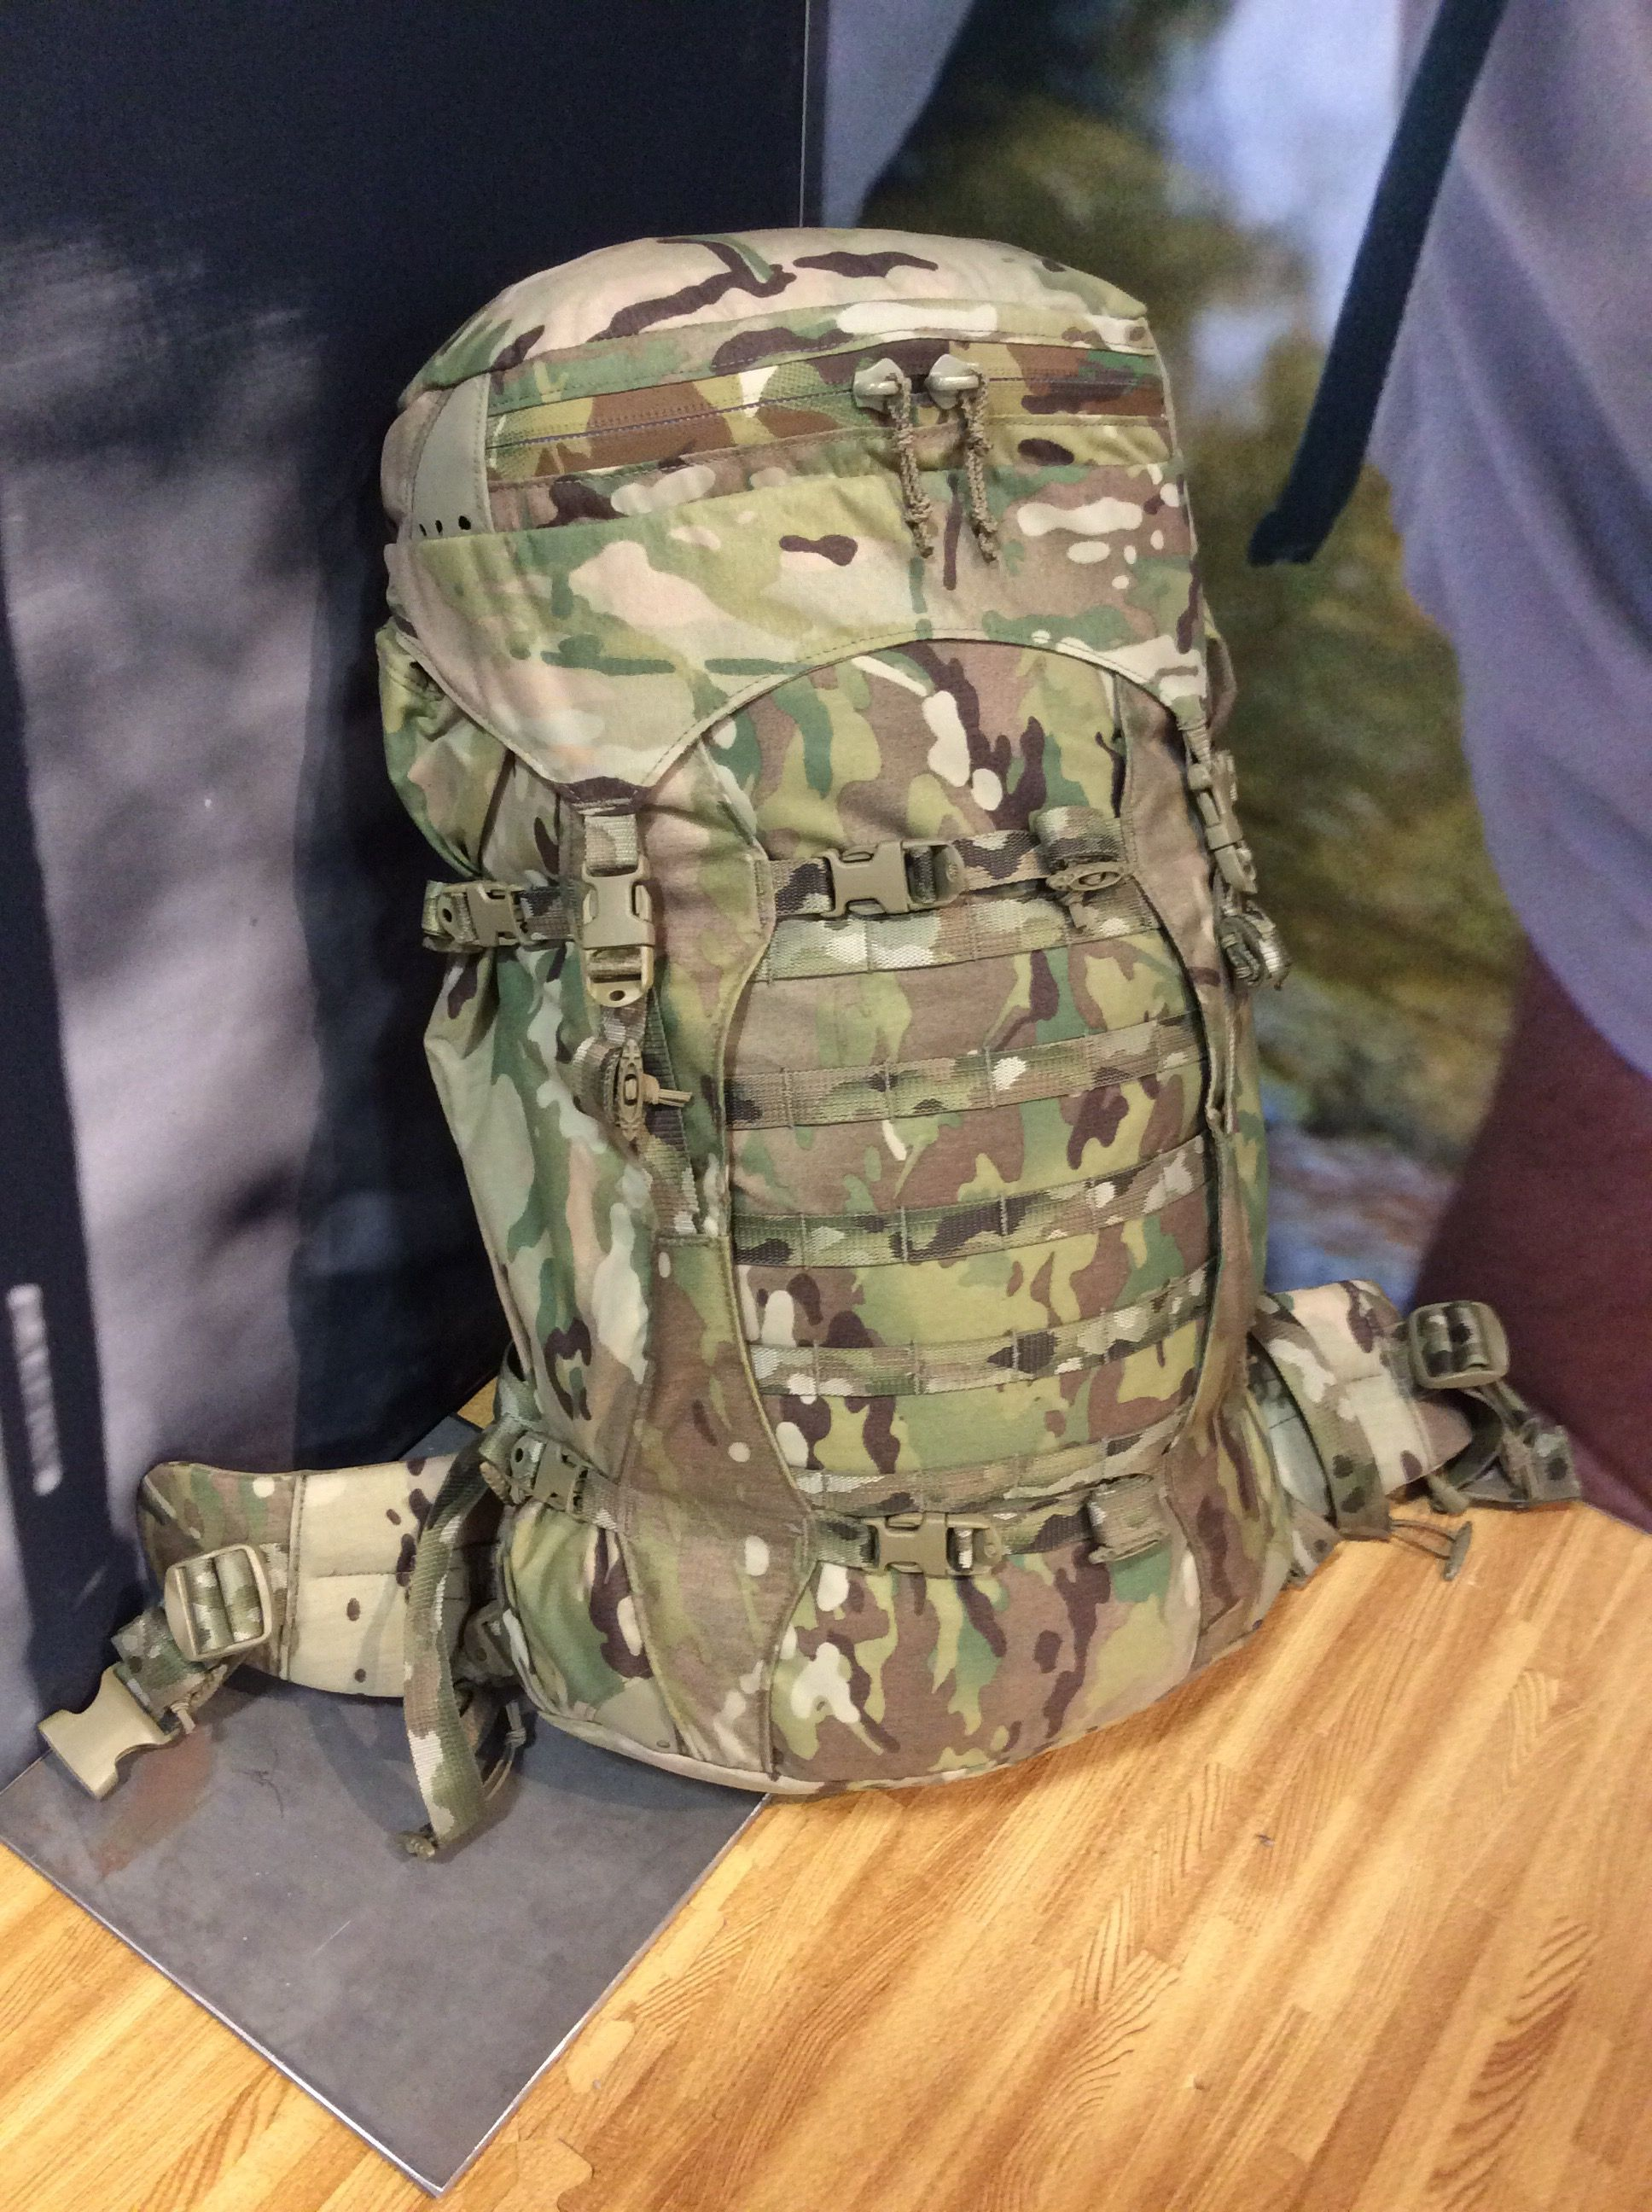 Or Granite Gear 338 Jungle Ruck Soldier Systems